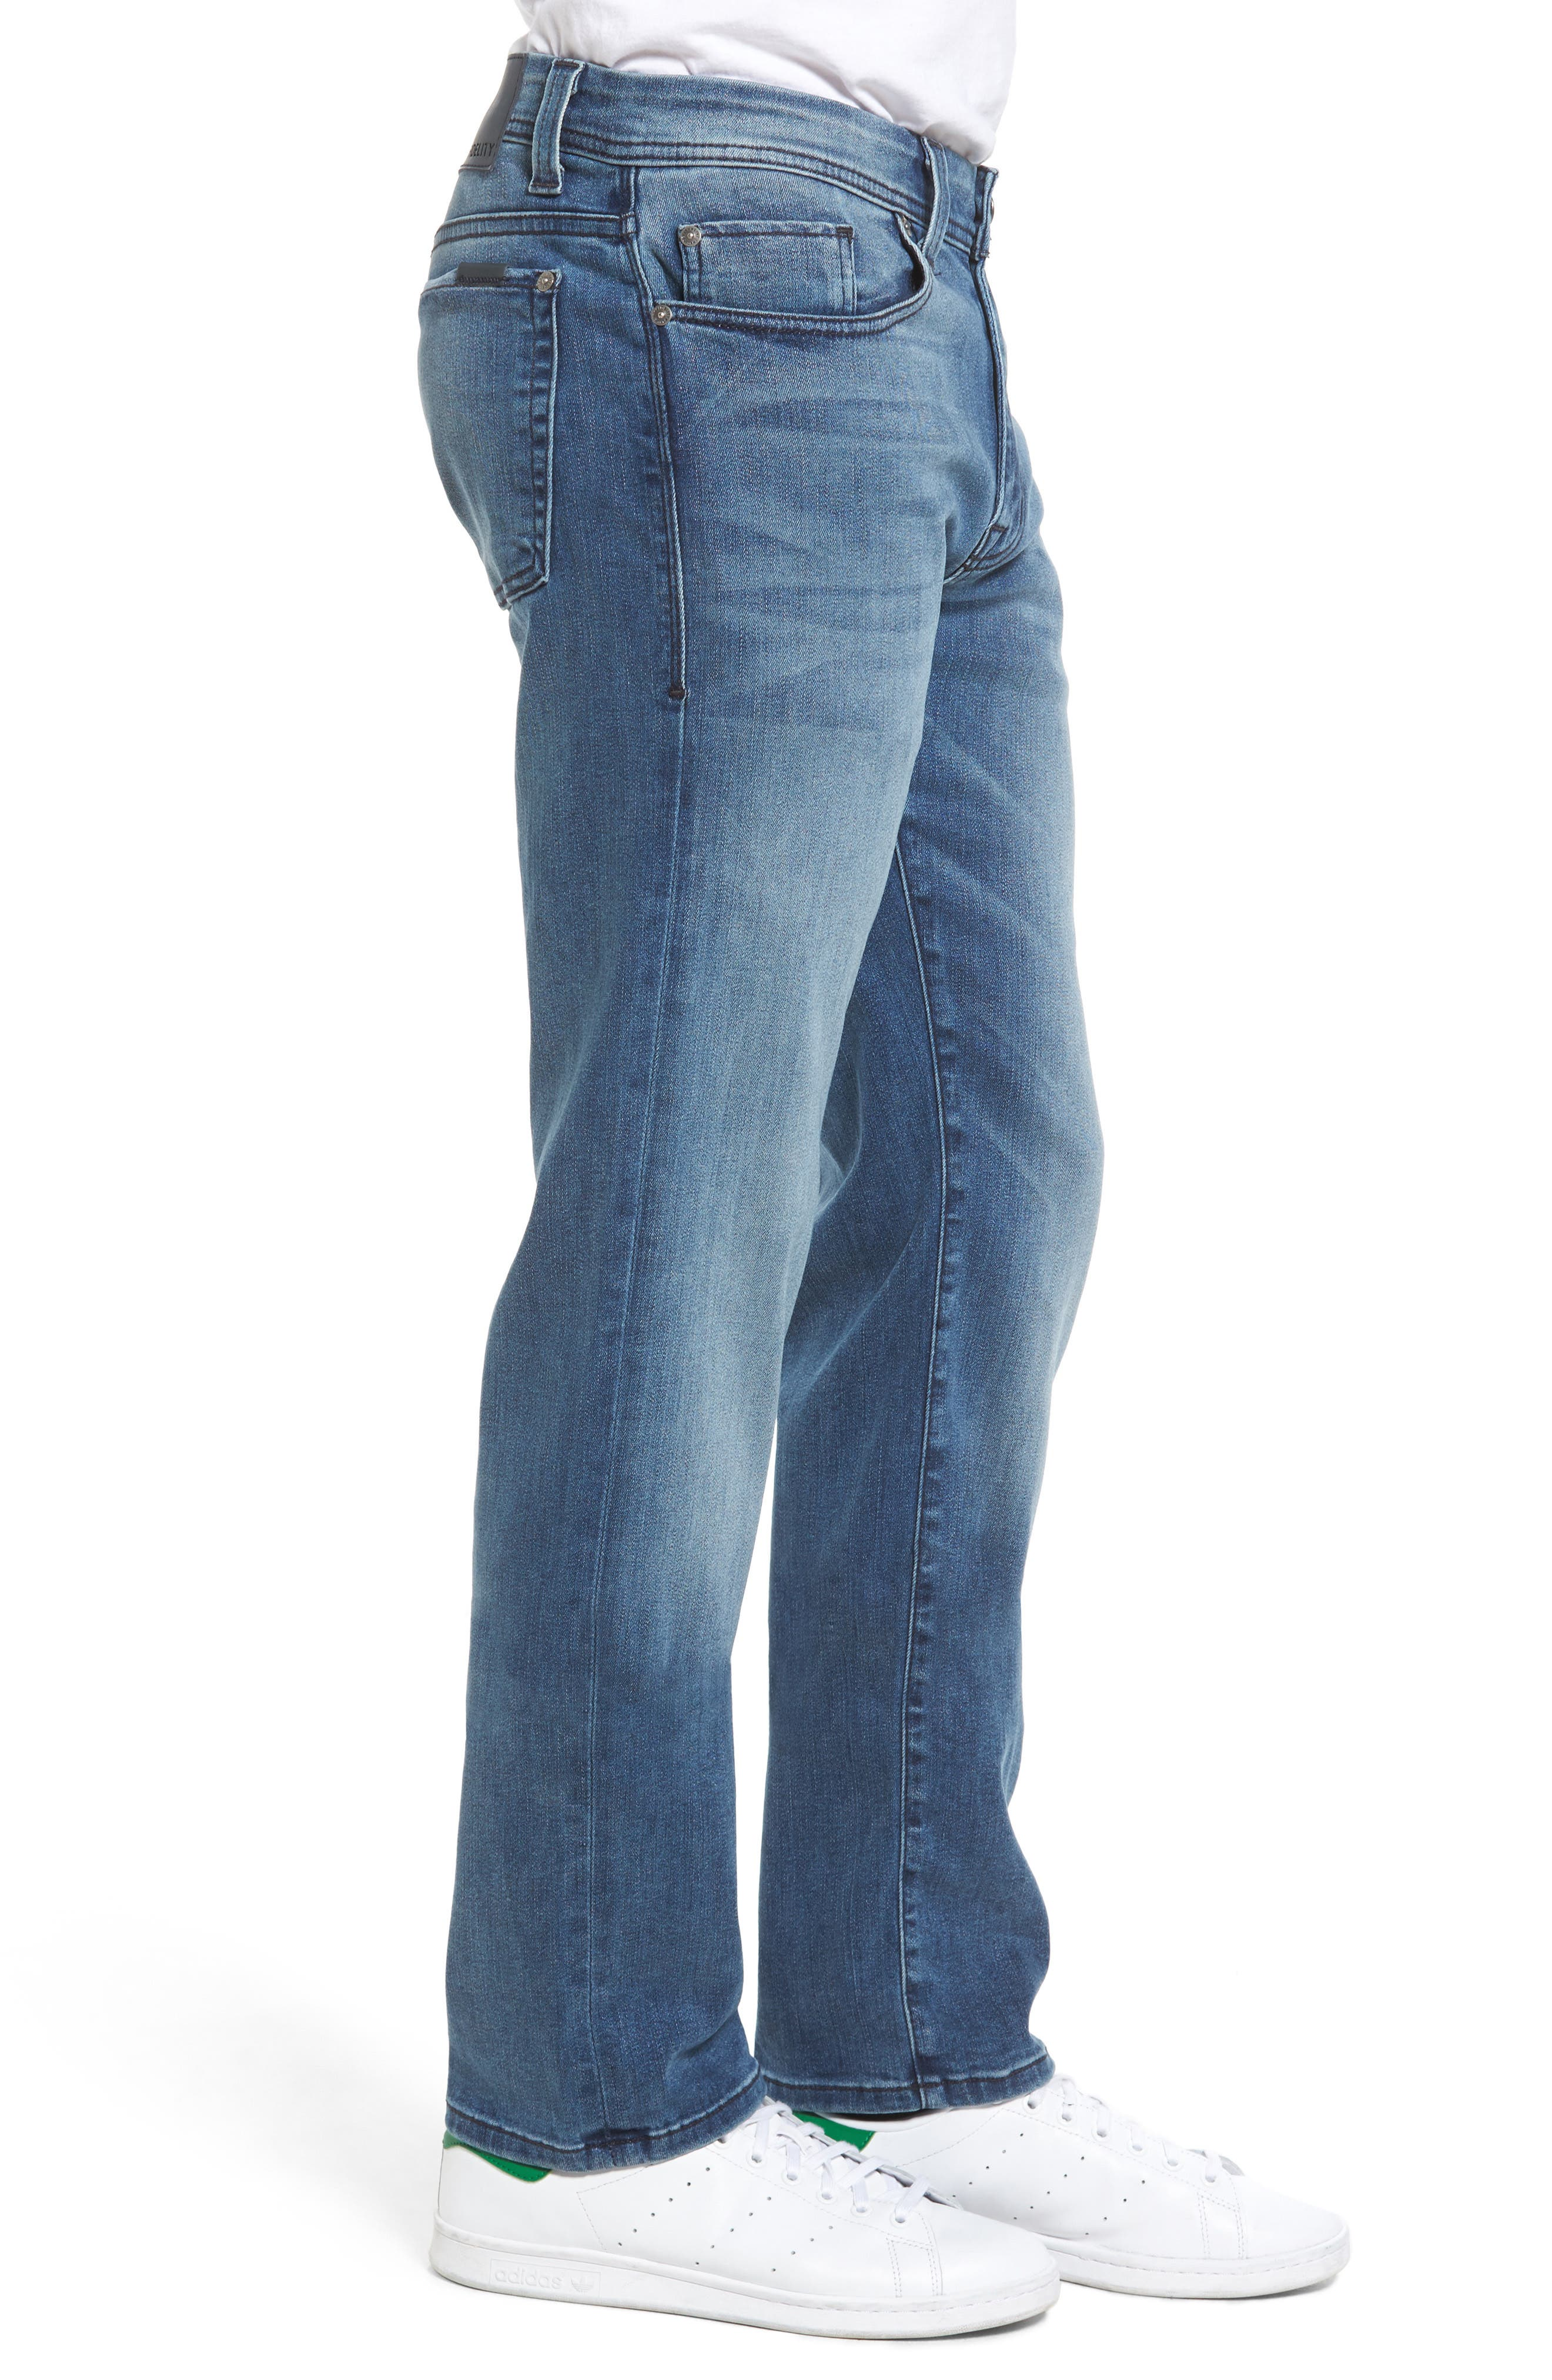 Jimmy Slim Straight Leg Jeans,                             Alternate thumbnail 3, color,                             Cortana Blue